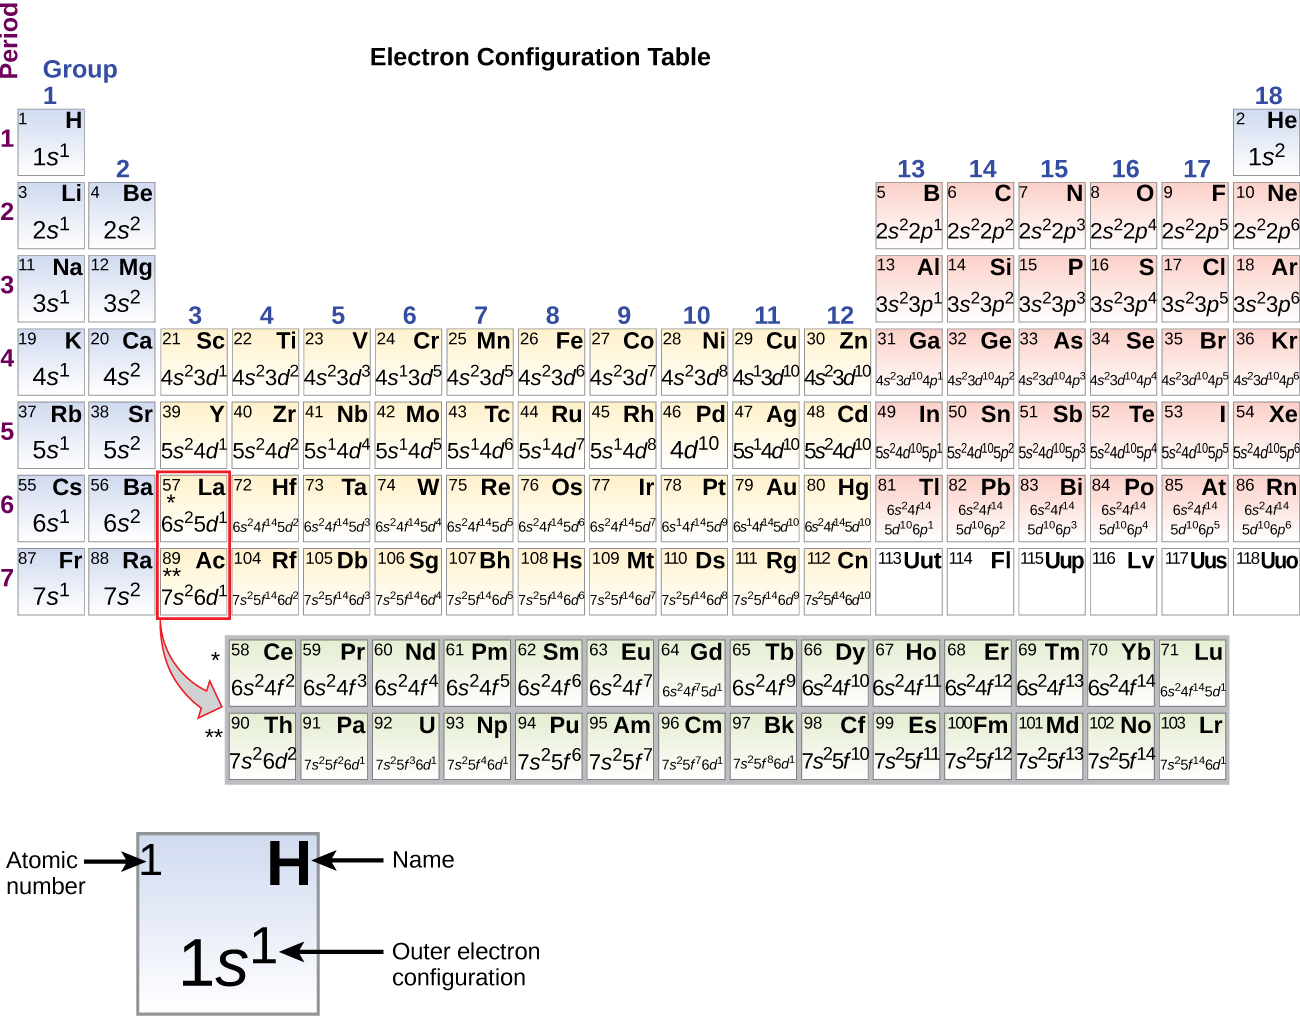 64 electronic structure of atoms electron configurations a periodic table entitled electron configuration table is shown the table gamestrikefo Choice Image